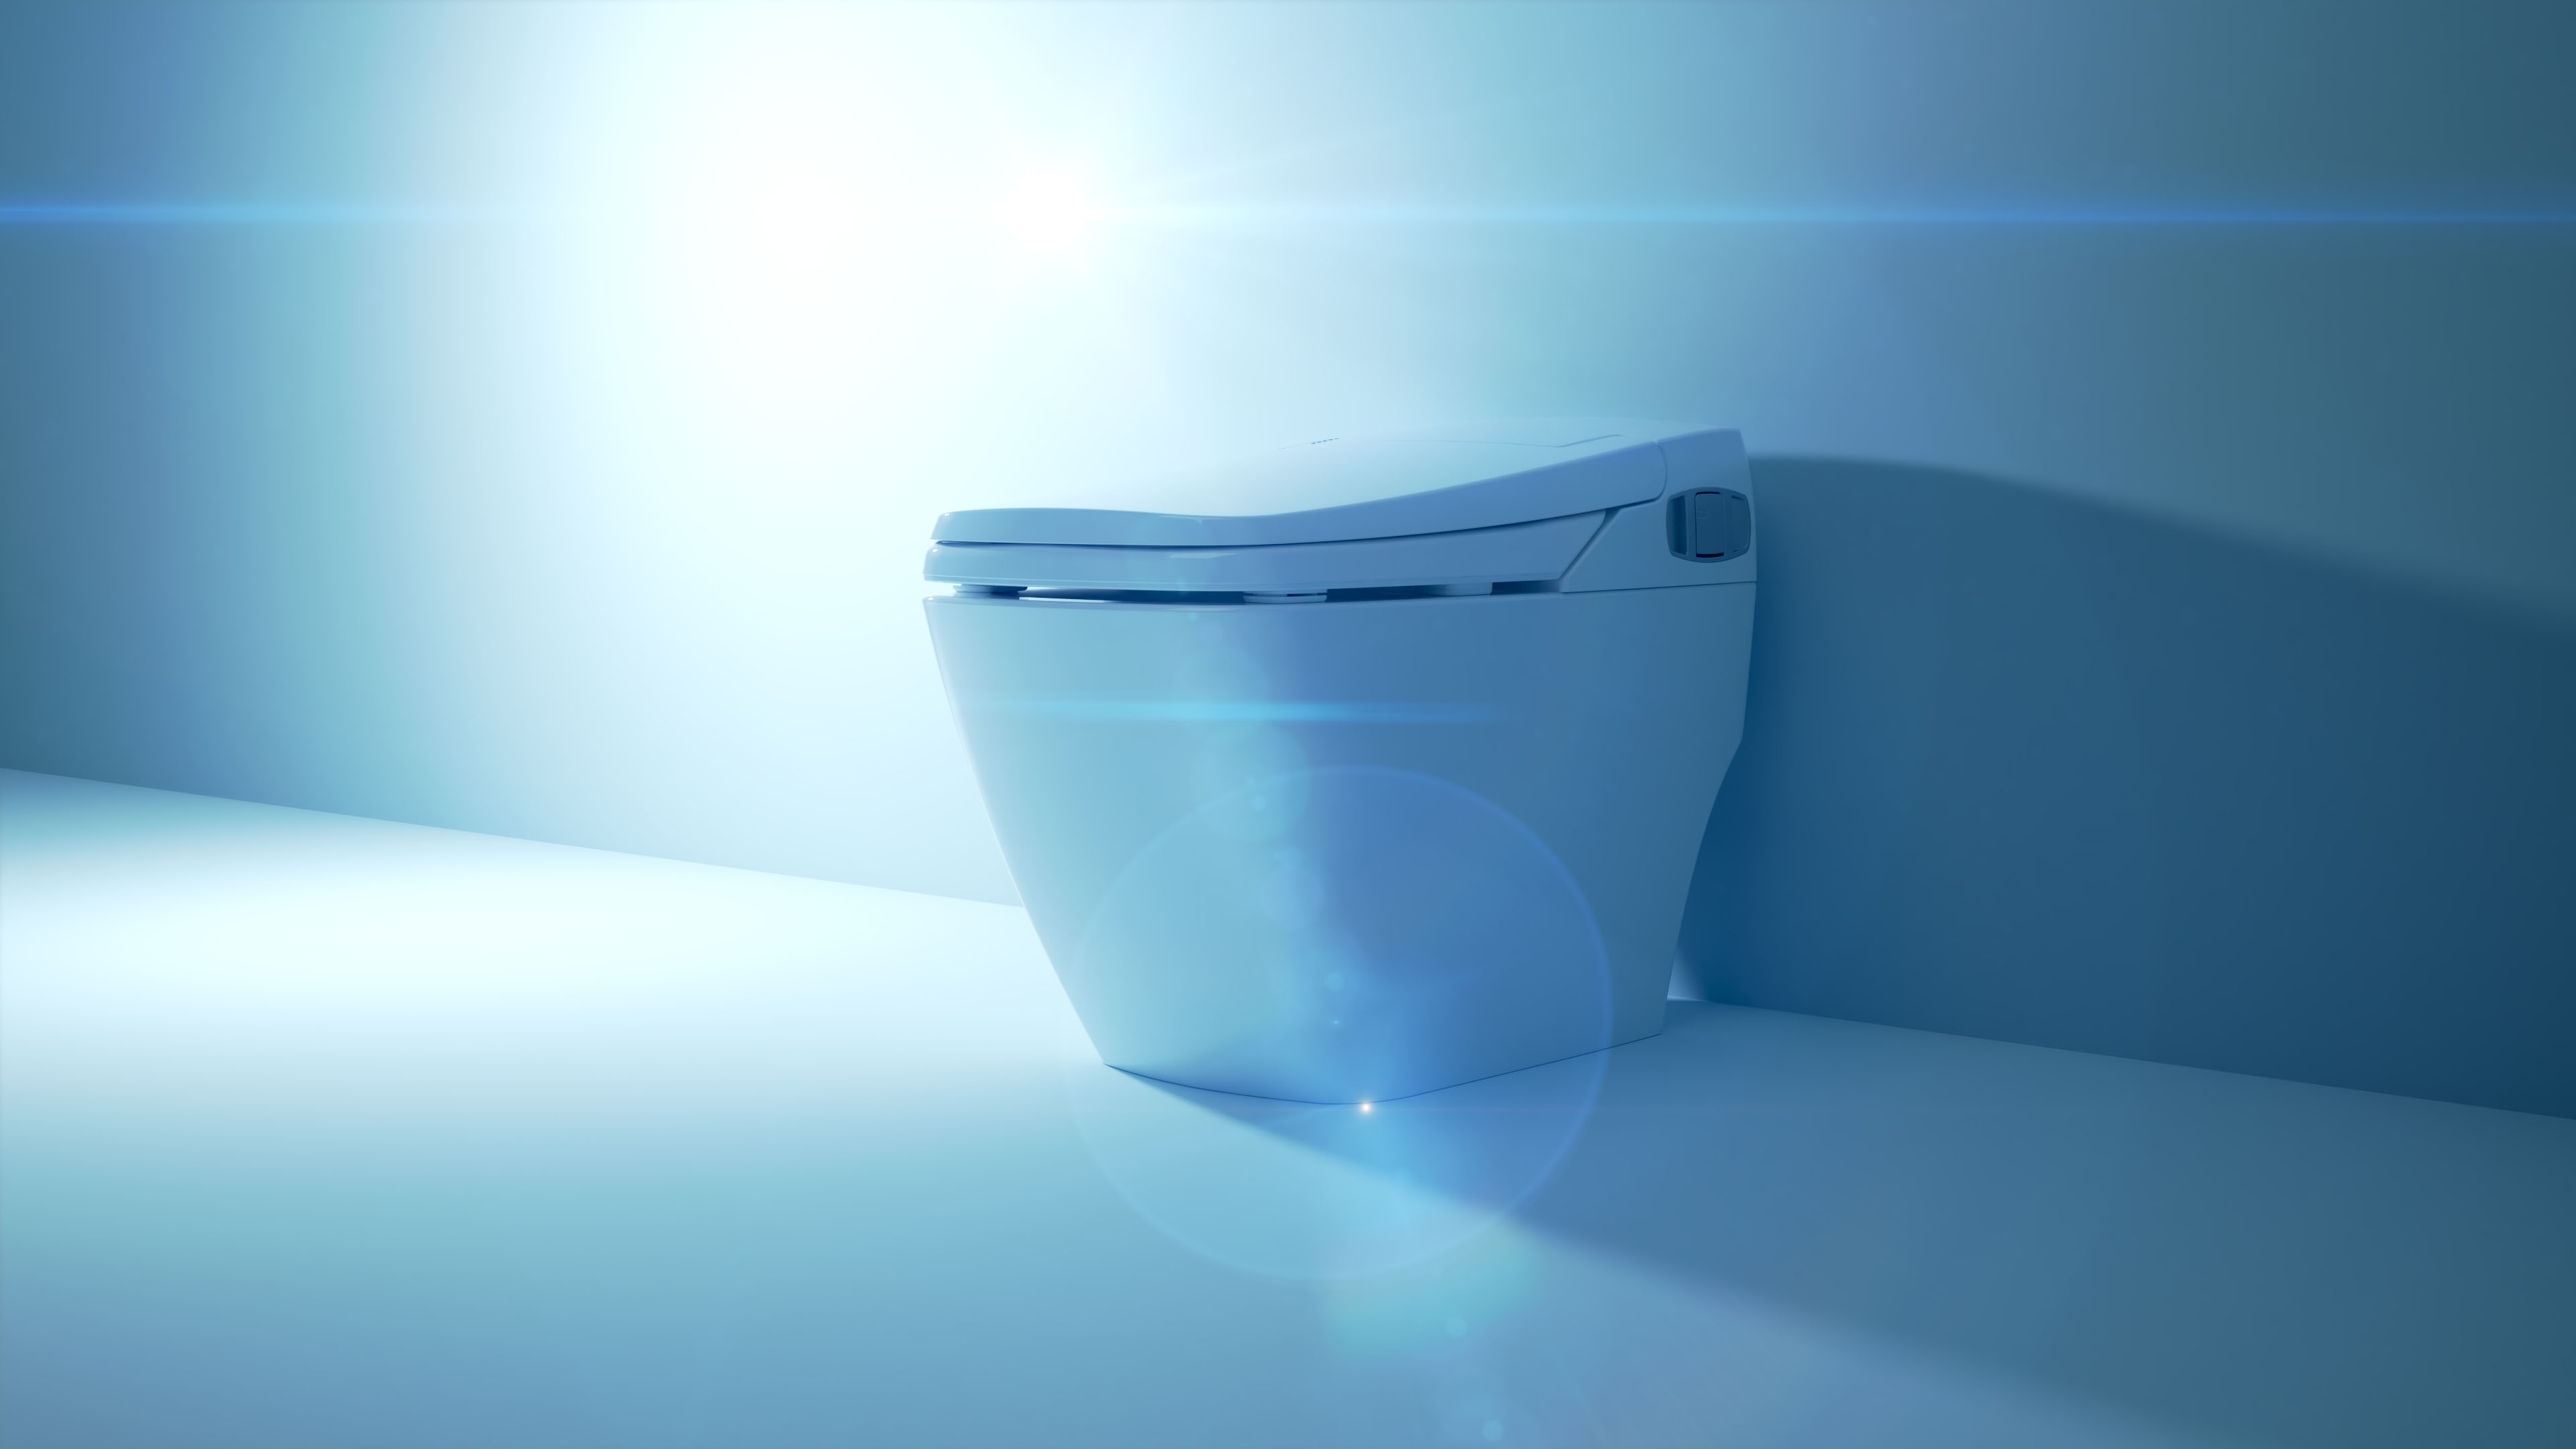 BioBidet Prodigy smart toilet device in blue environment